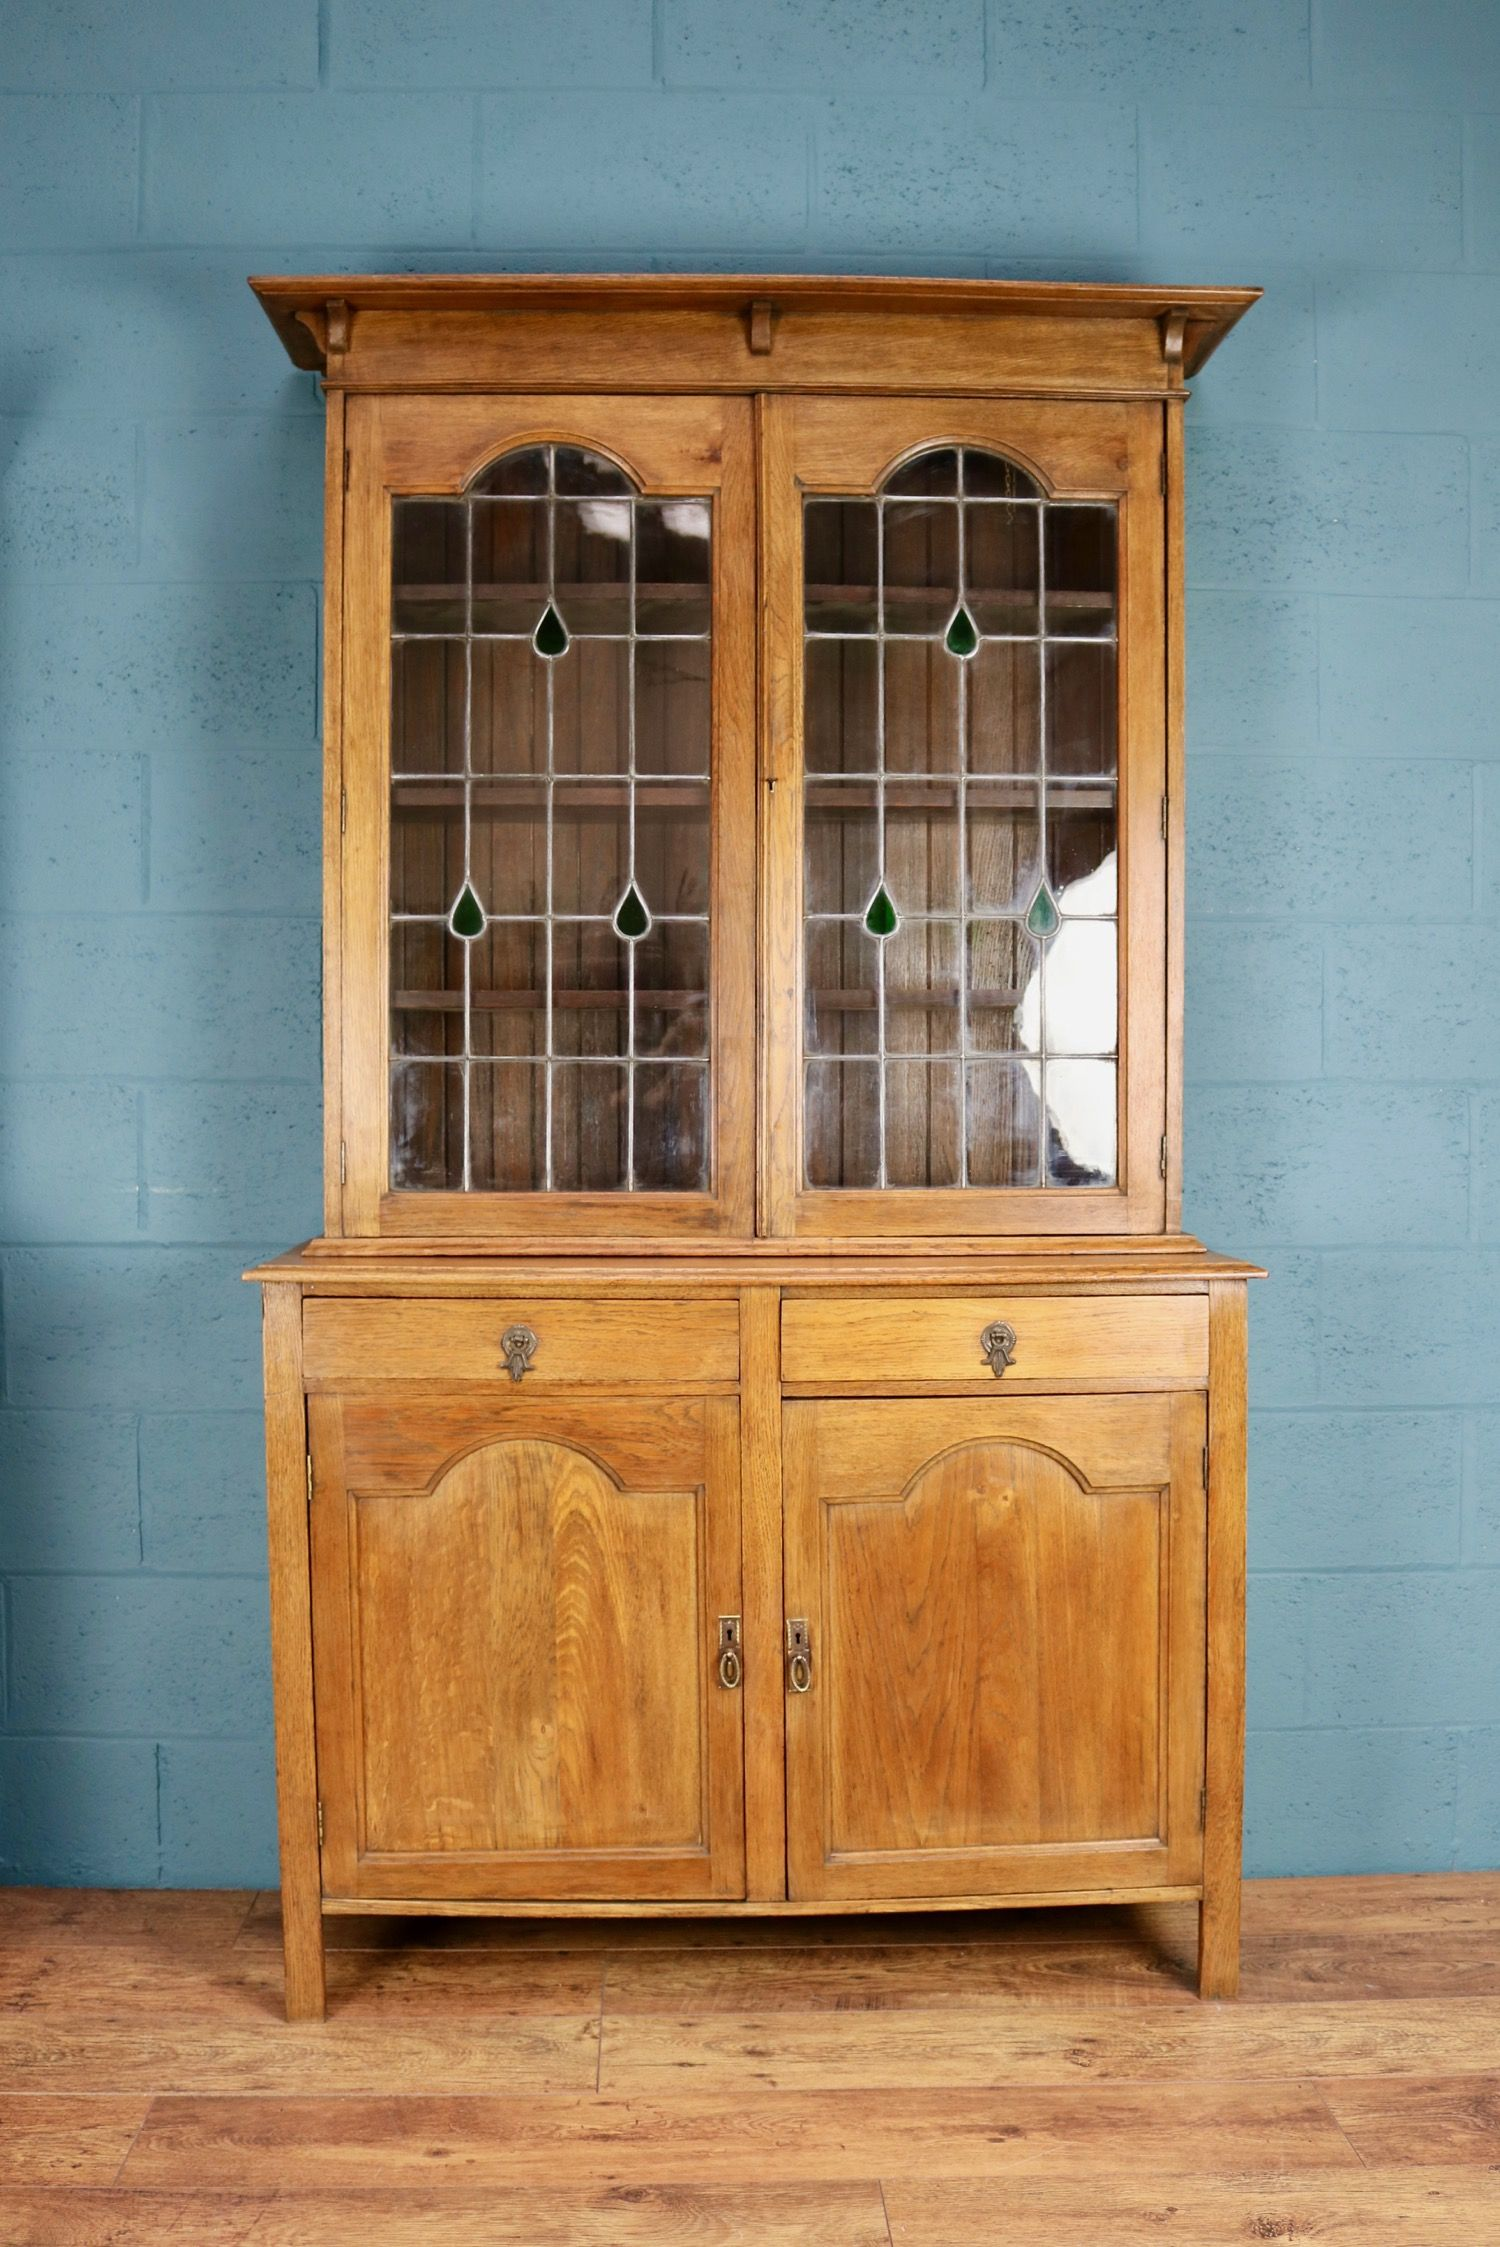 Oak Glazed Bookcase I Https Www Walcotandco Co Uk Cabinets And Storage A C